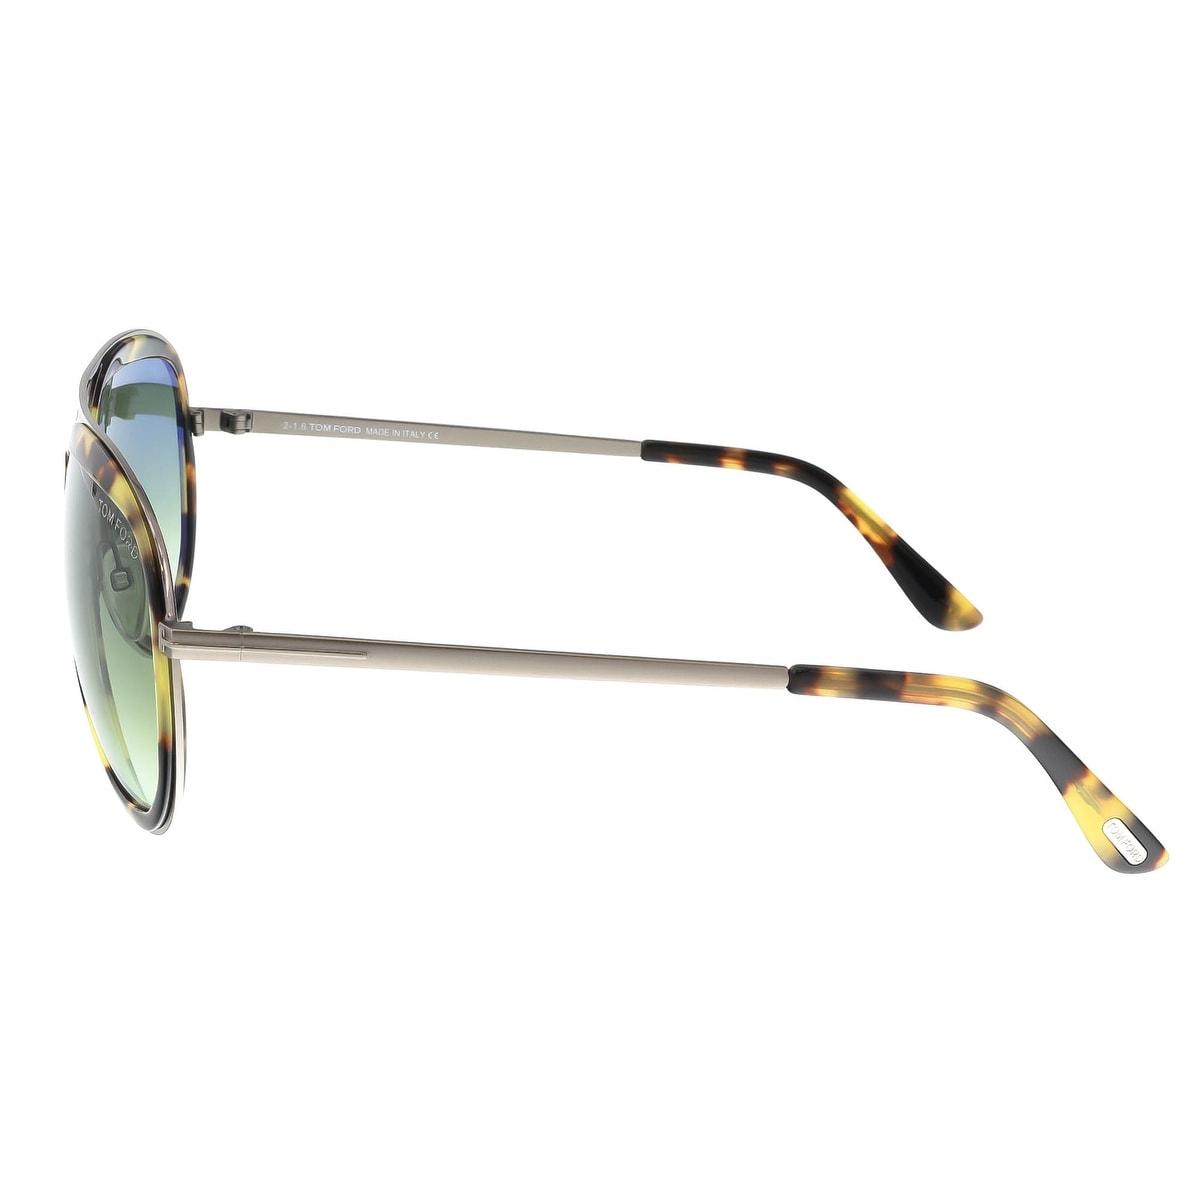 c8e5c8aa482 Shop Tom Ford FT0468 S 53P ANDY Brushed Silver Tortoise Aviator Sunglasses  - 58-17-140 - Free Shipping Today - Overstock - 16747704